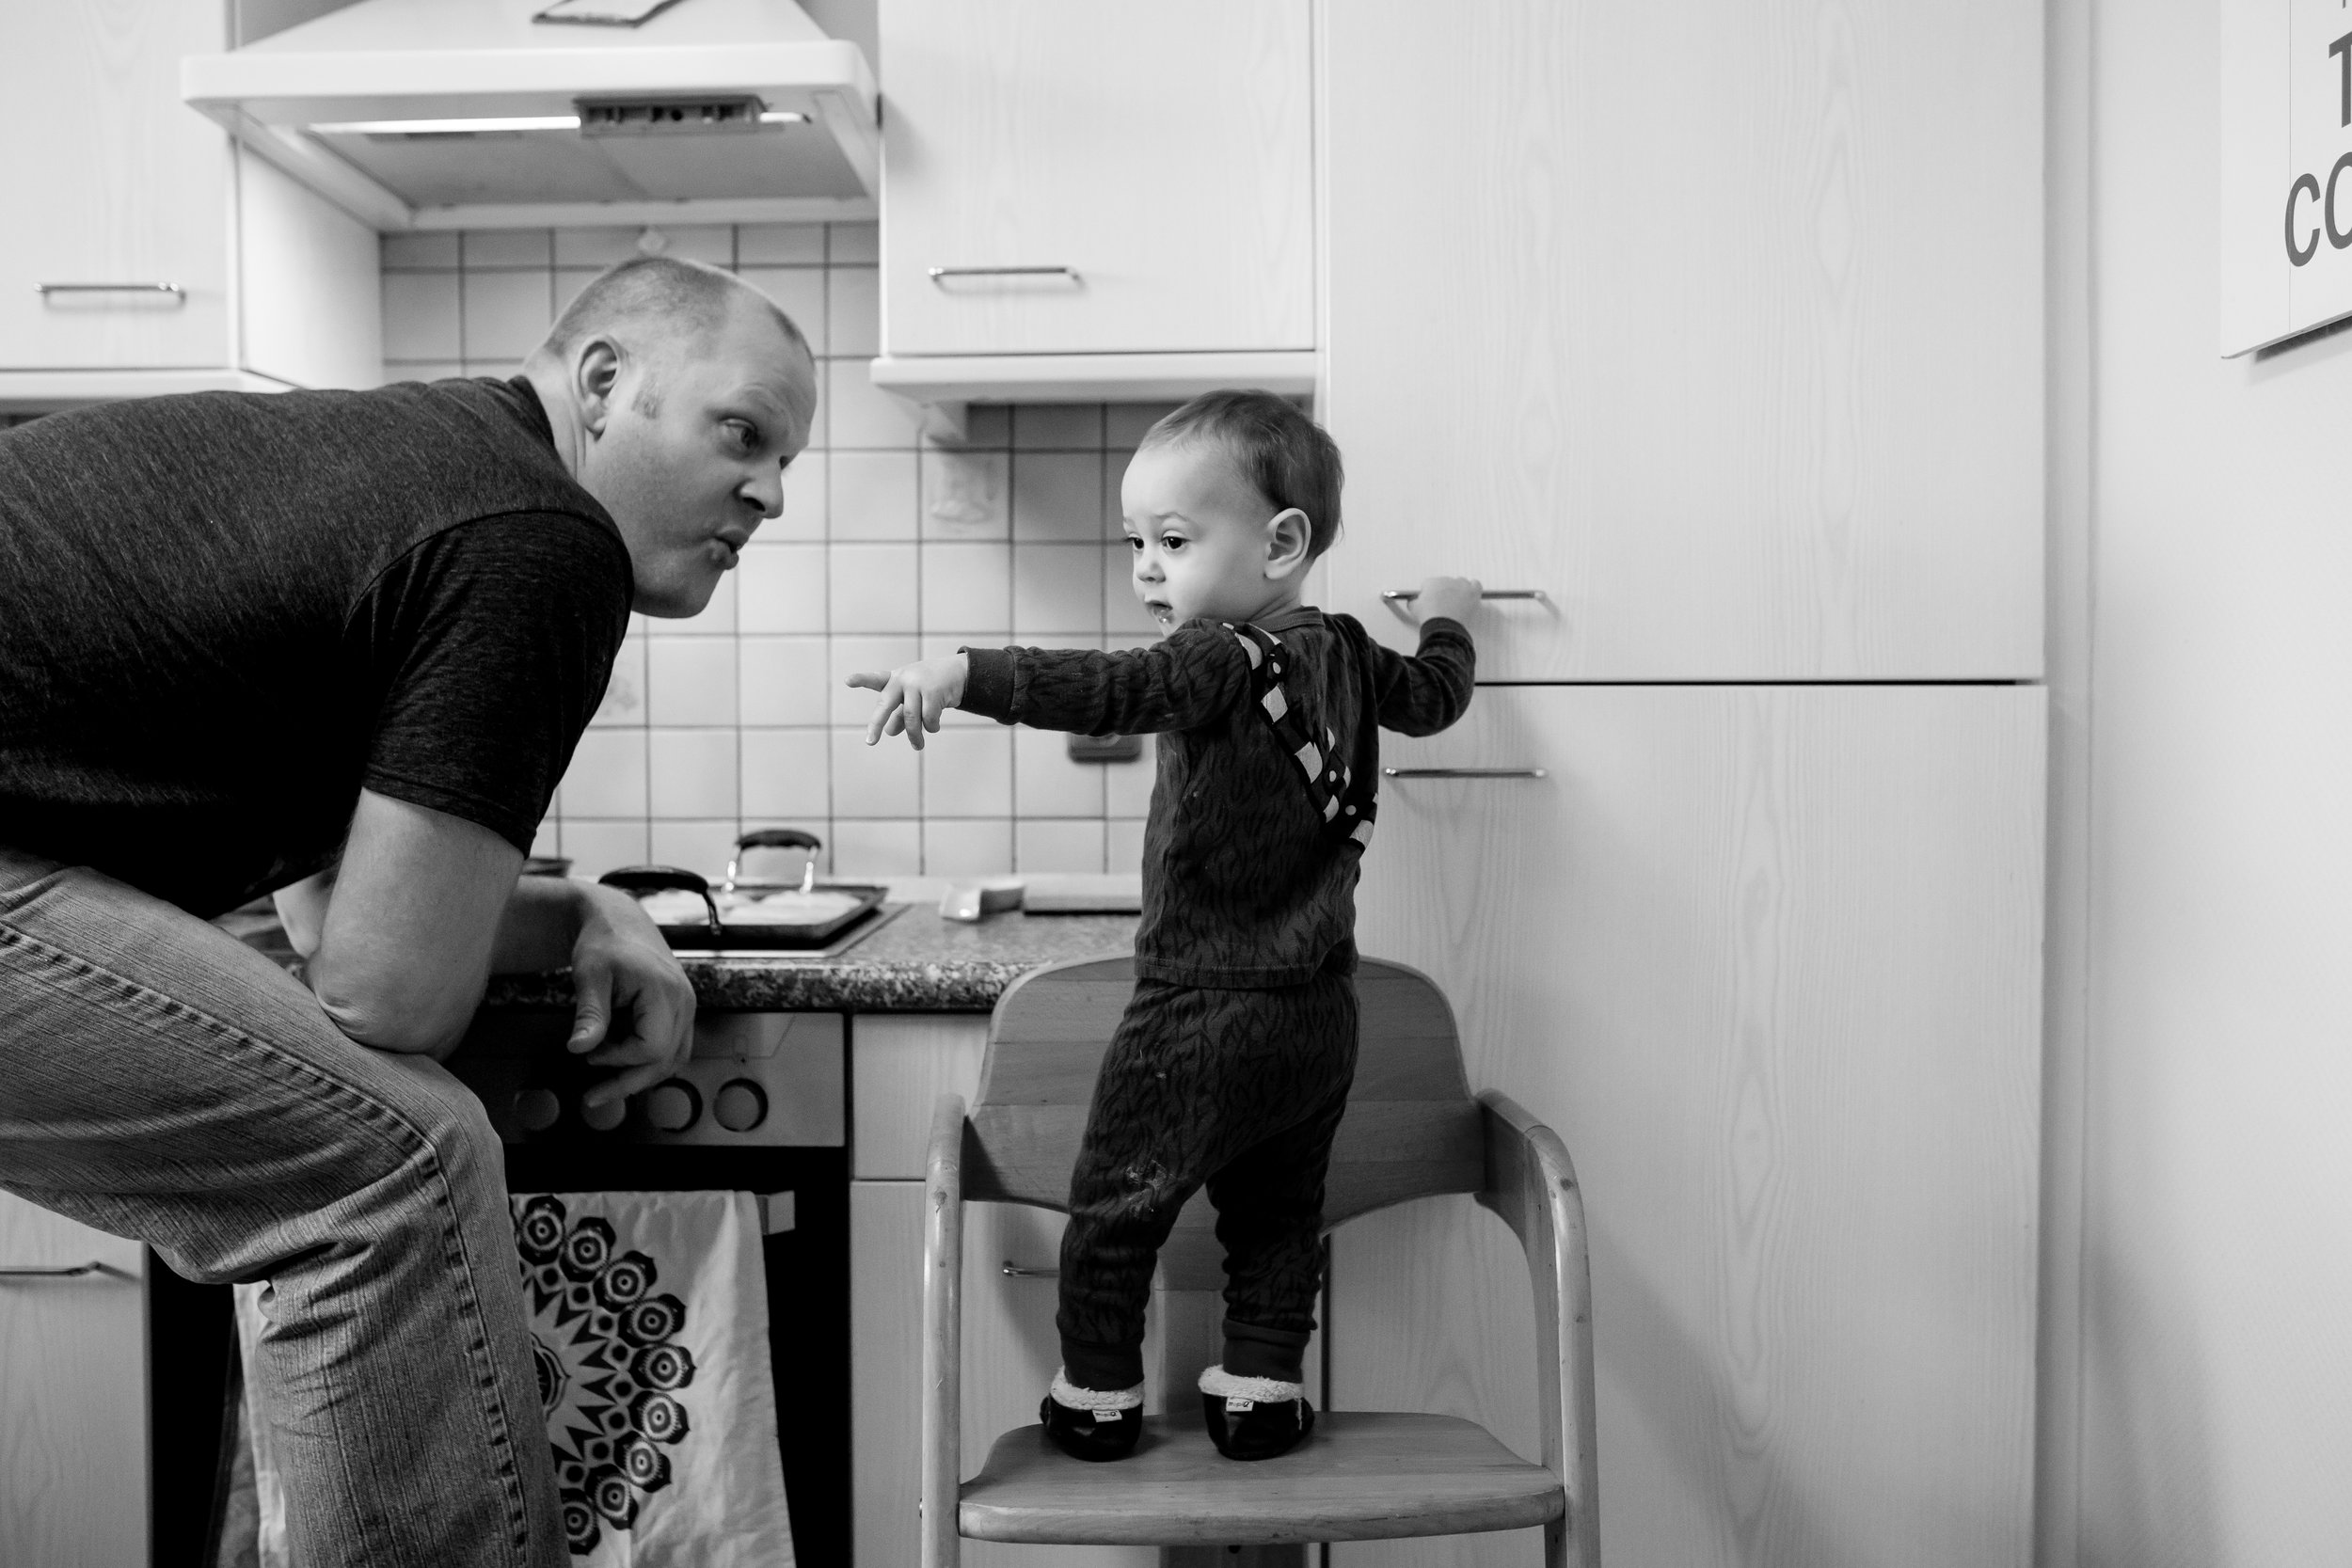 Son on stool points and Dad talks to him